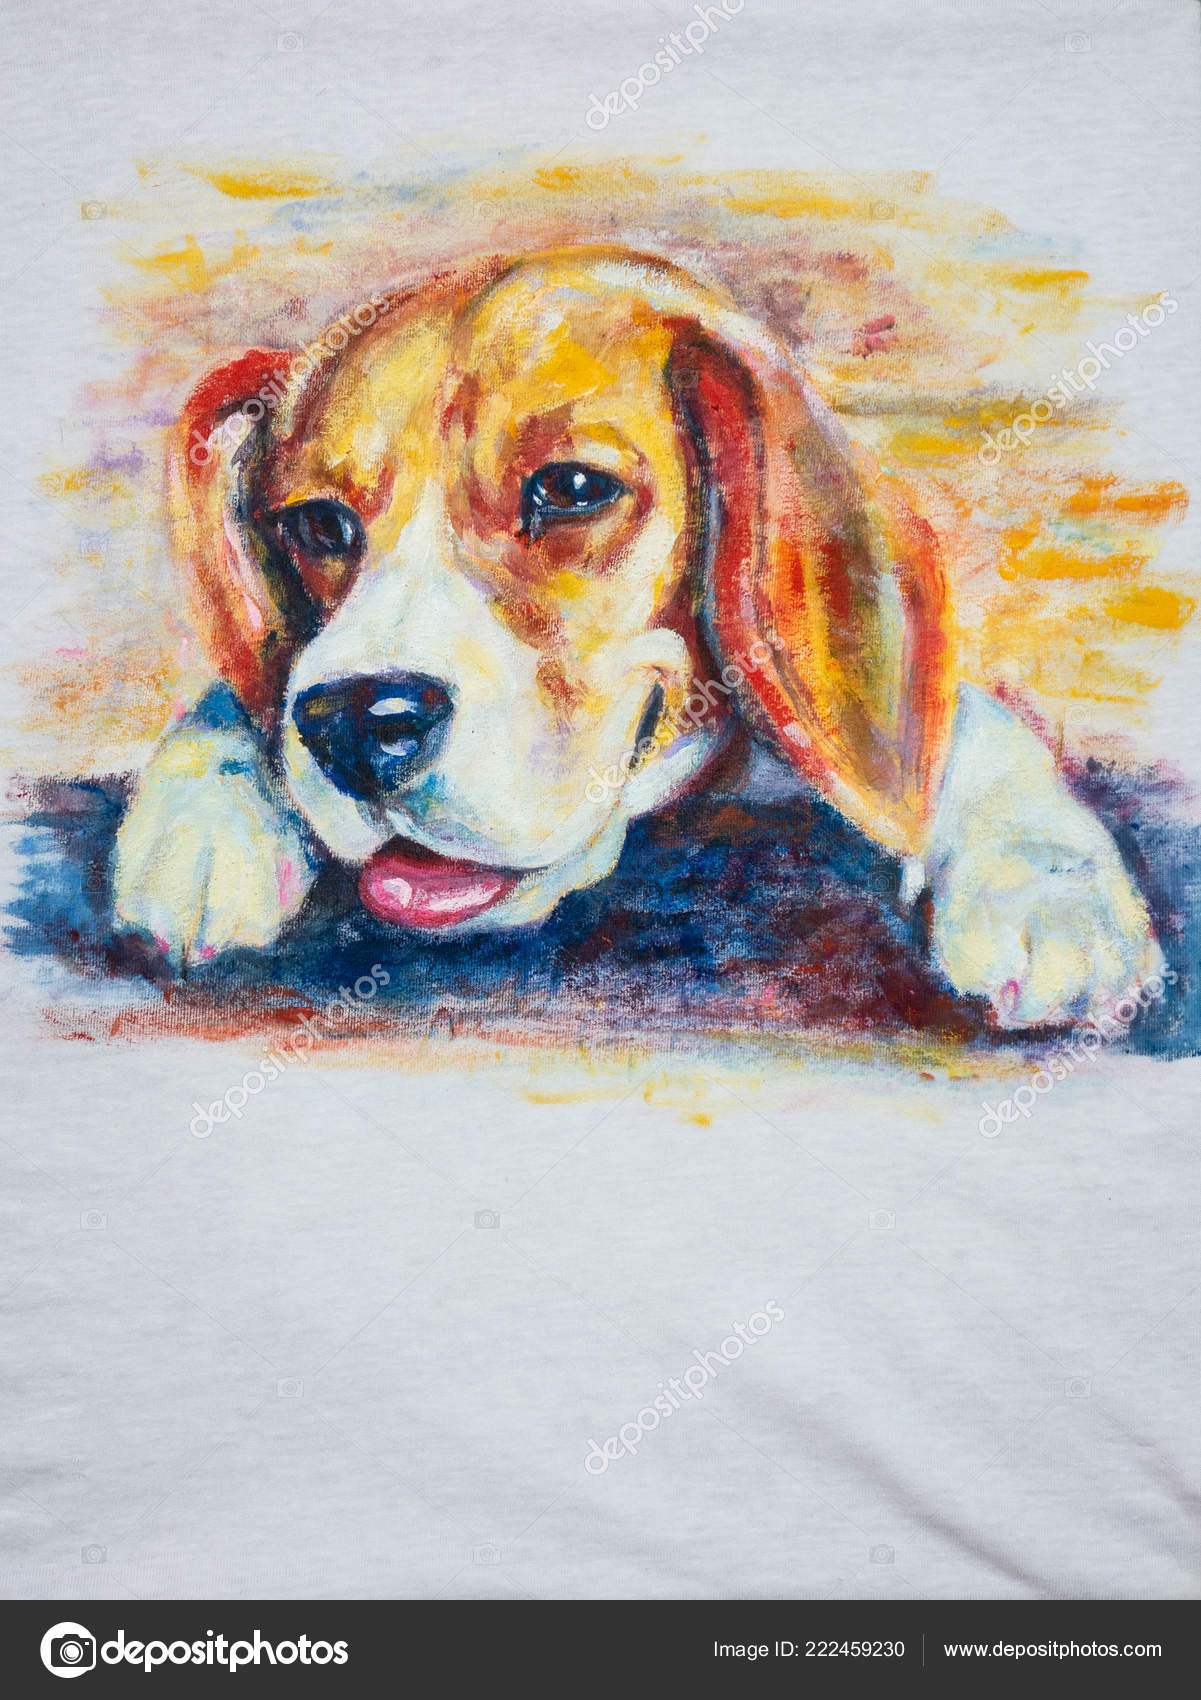 Adorable Beagle Dog Painting White Shirt Stock Photo C Hadkhanong1979 222459230